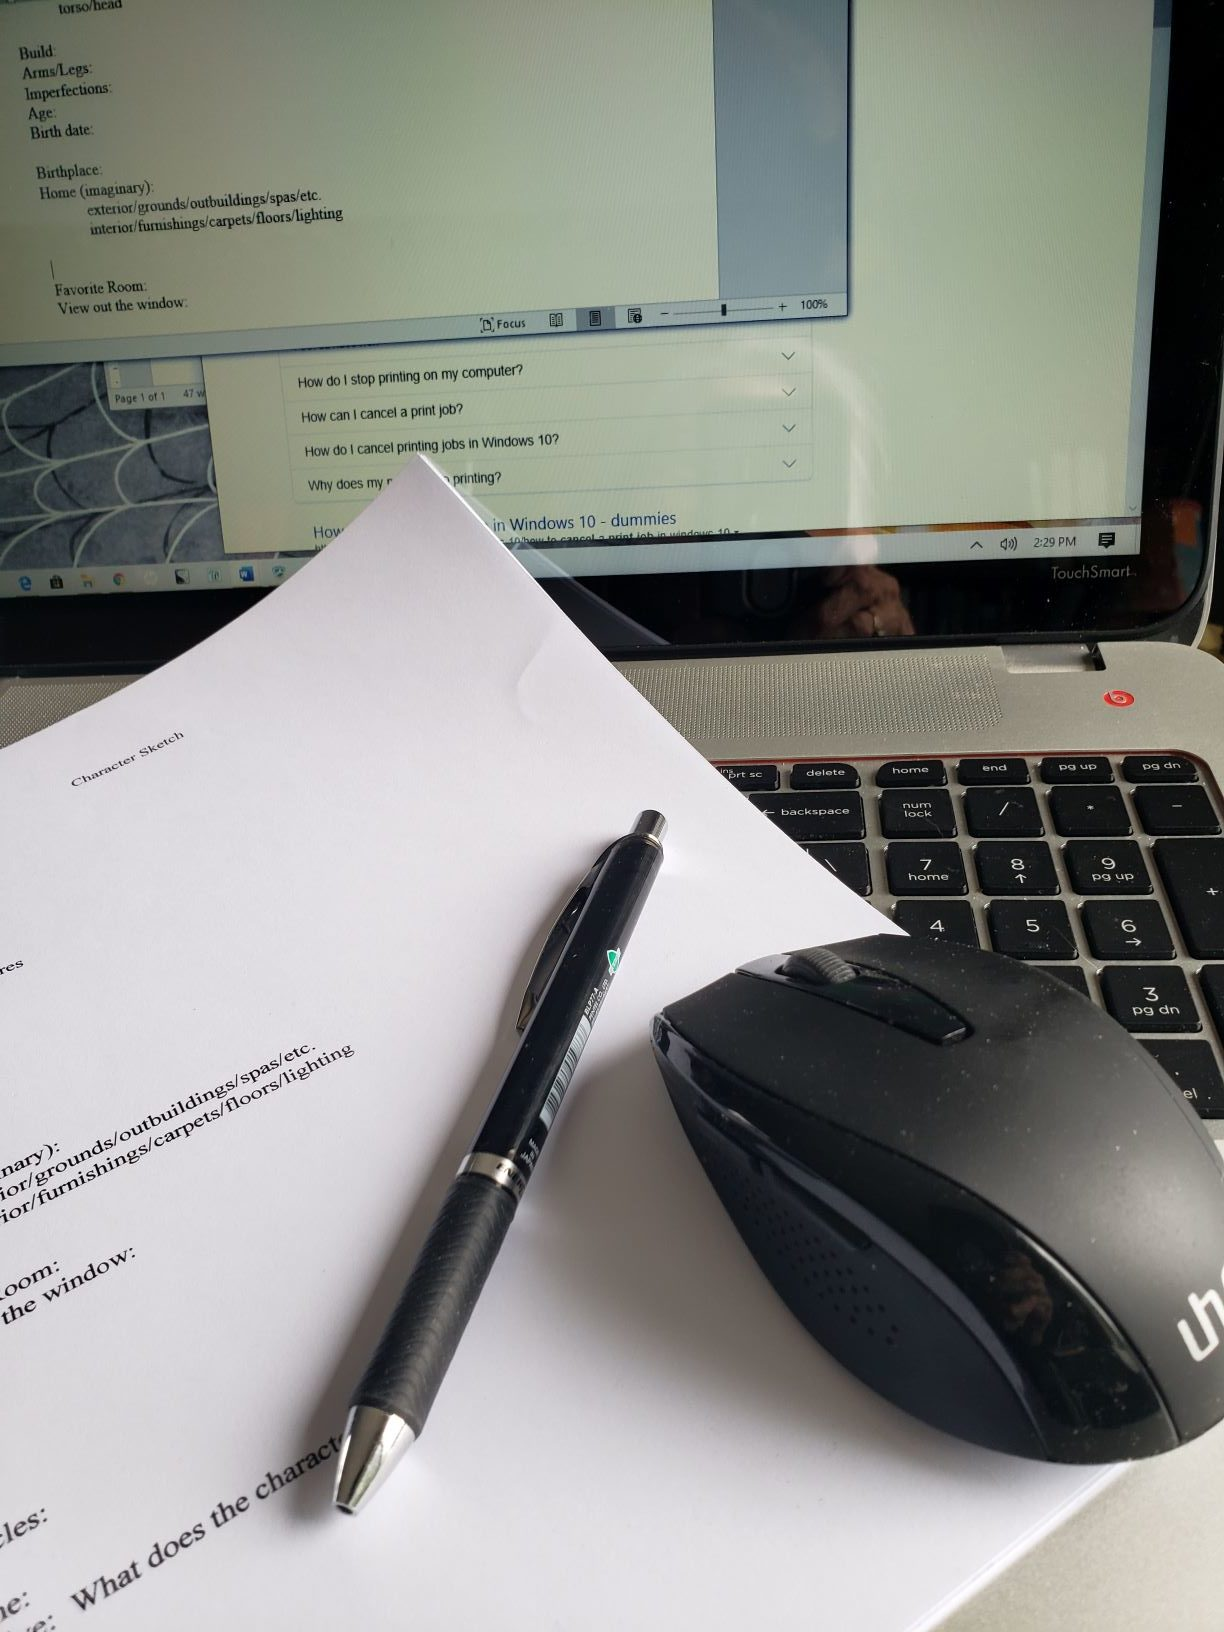 image of pen, paper, mouse and computer